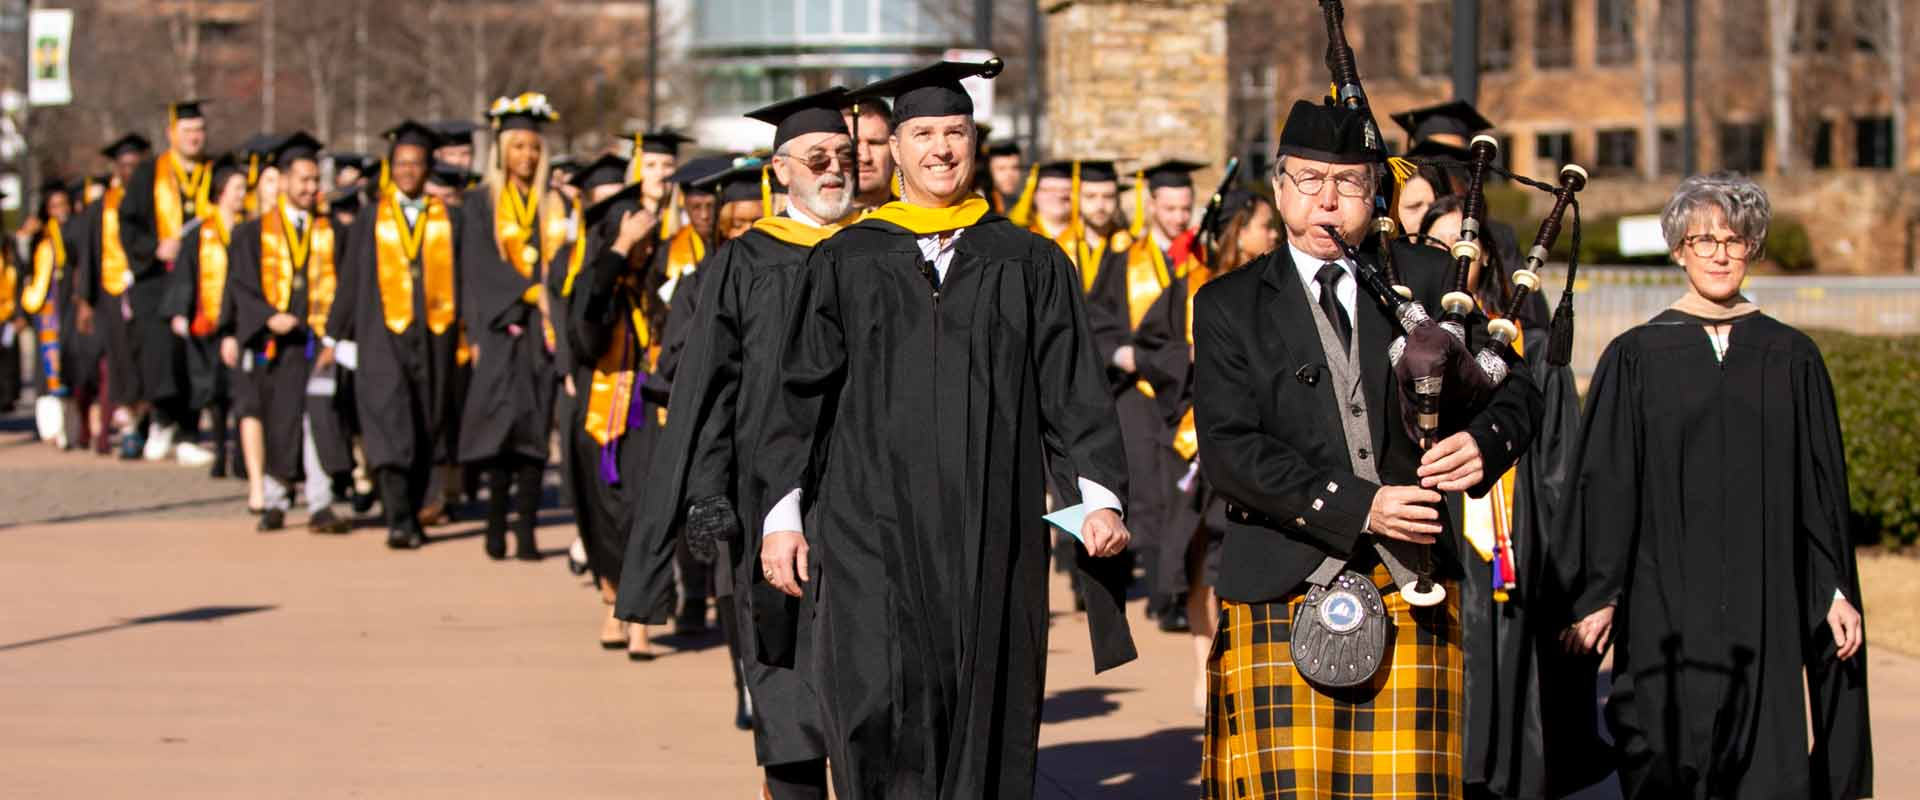 KSU Commencement Traditions